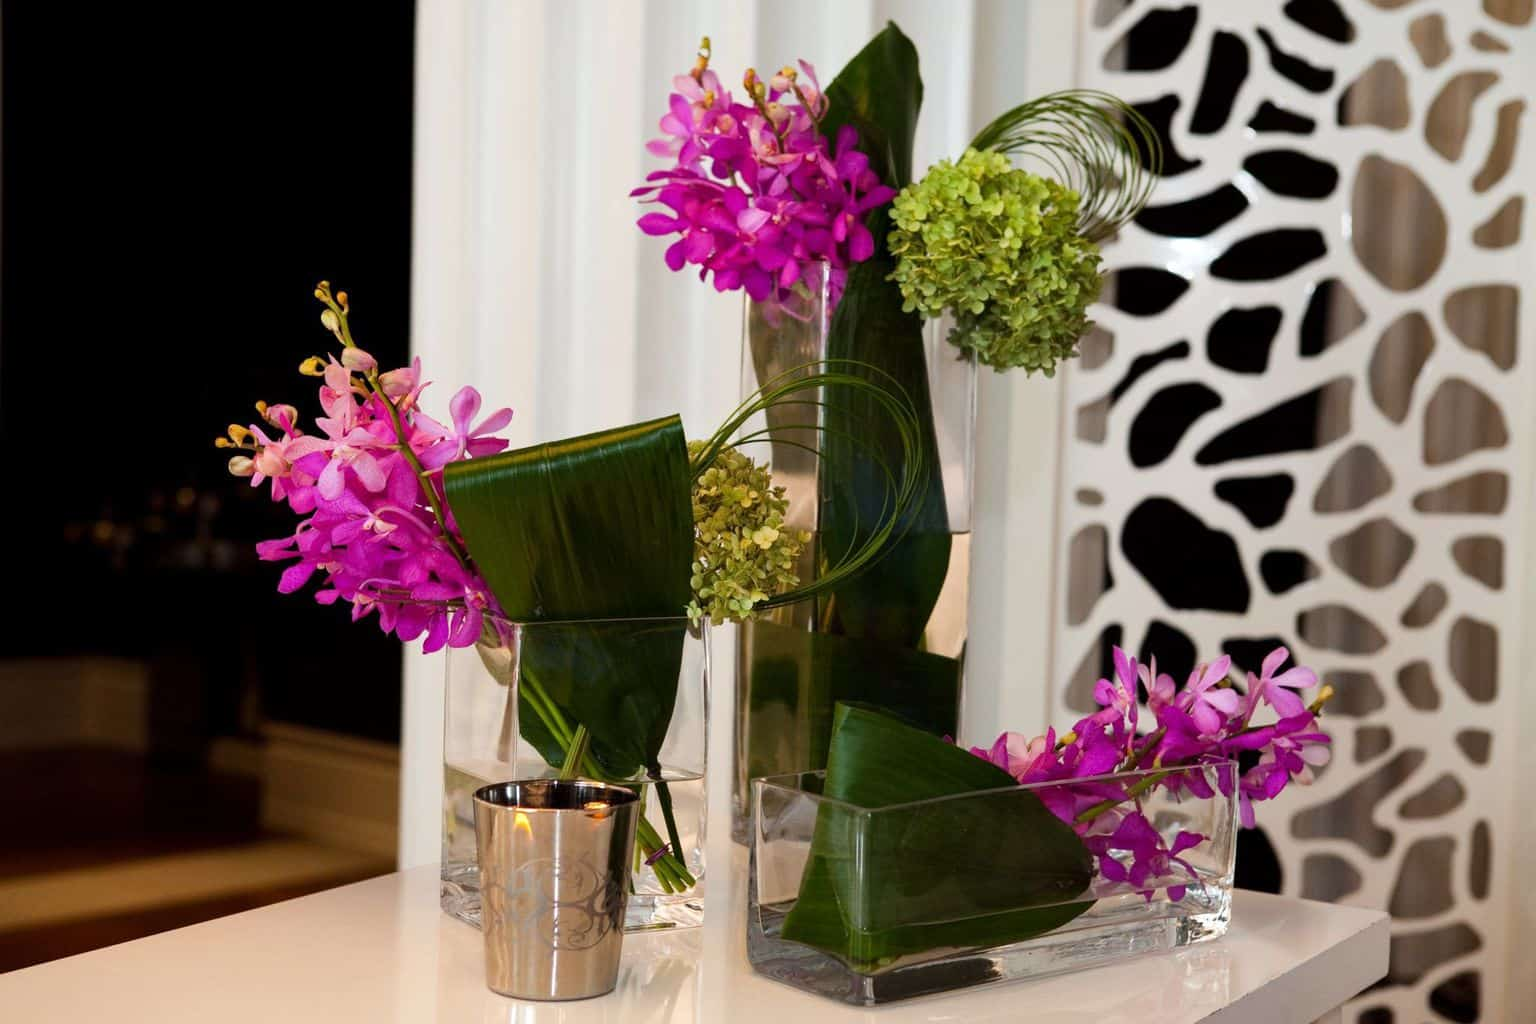 A collection of vases with orchids and green hydrangea